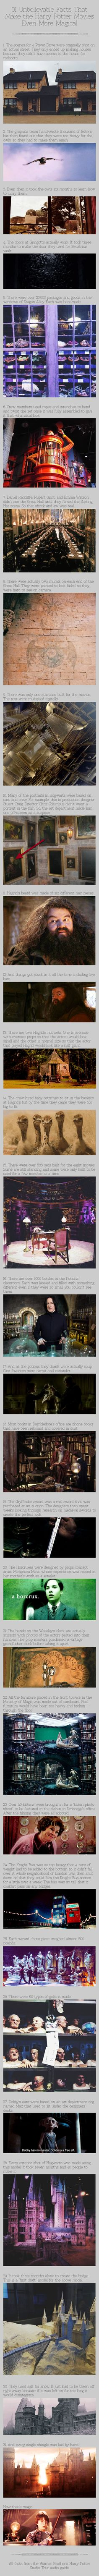 31 Unbelievable Facts That Make the Harry Potter Movies Even More Magical | I love the attention to detail! It just makes the movies so amazing